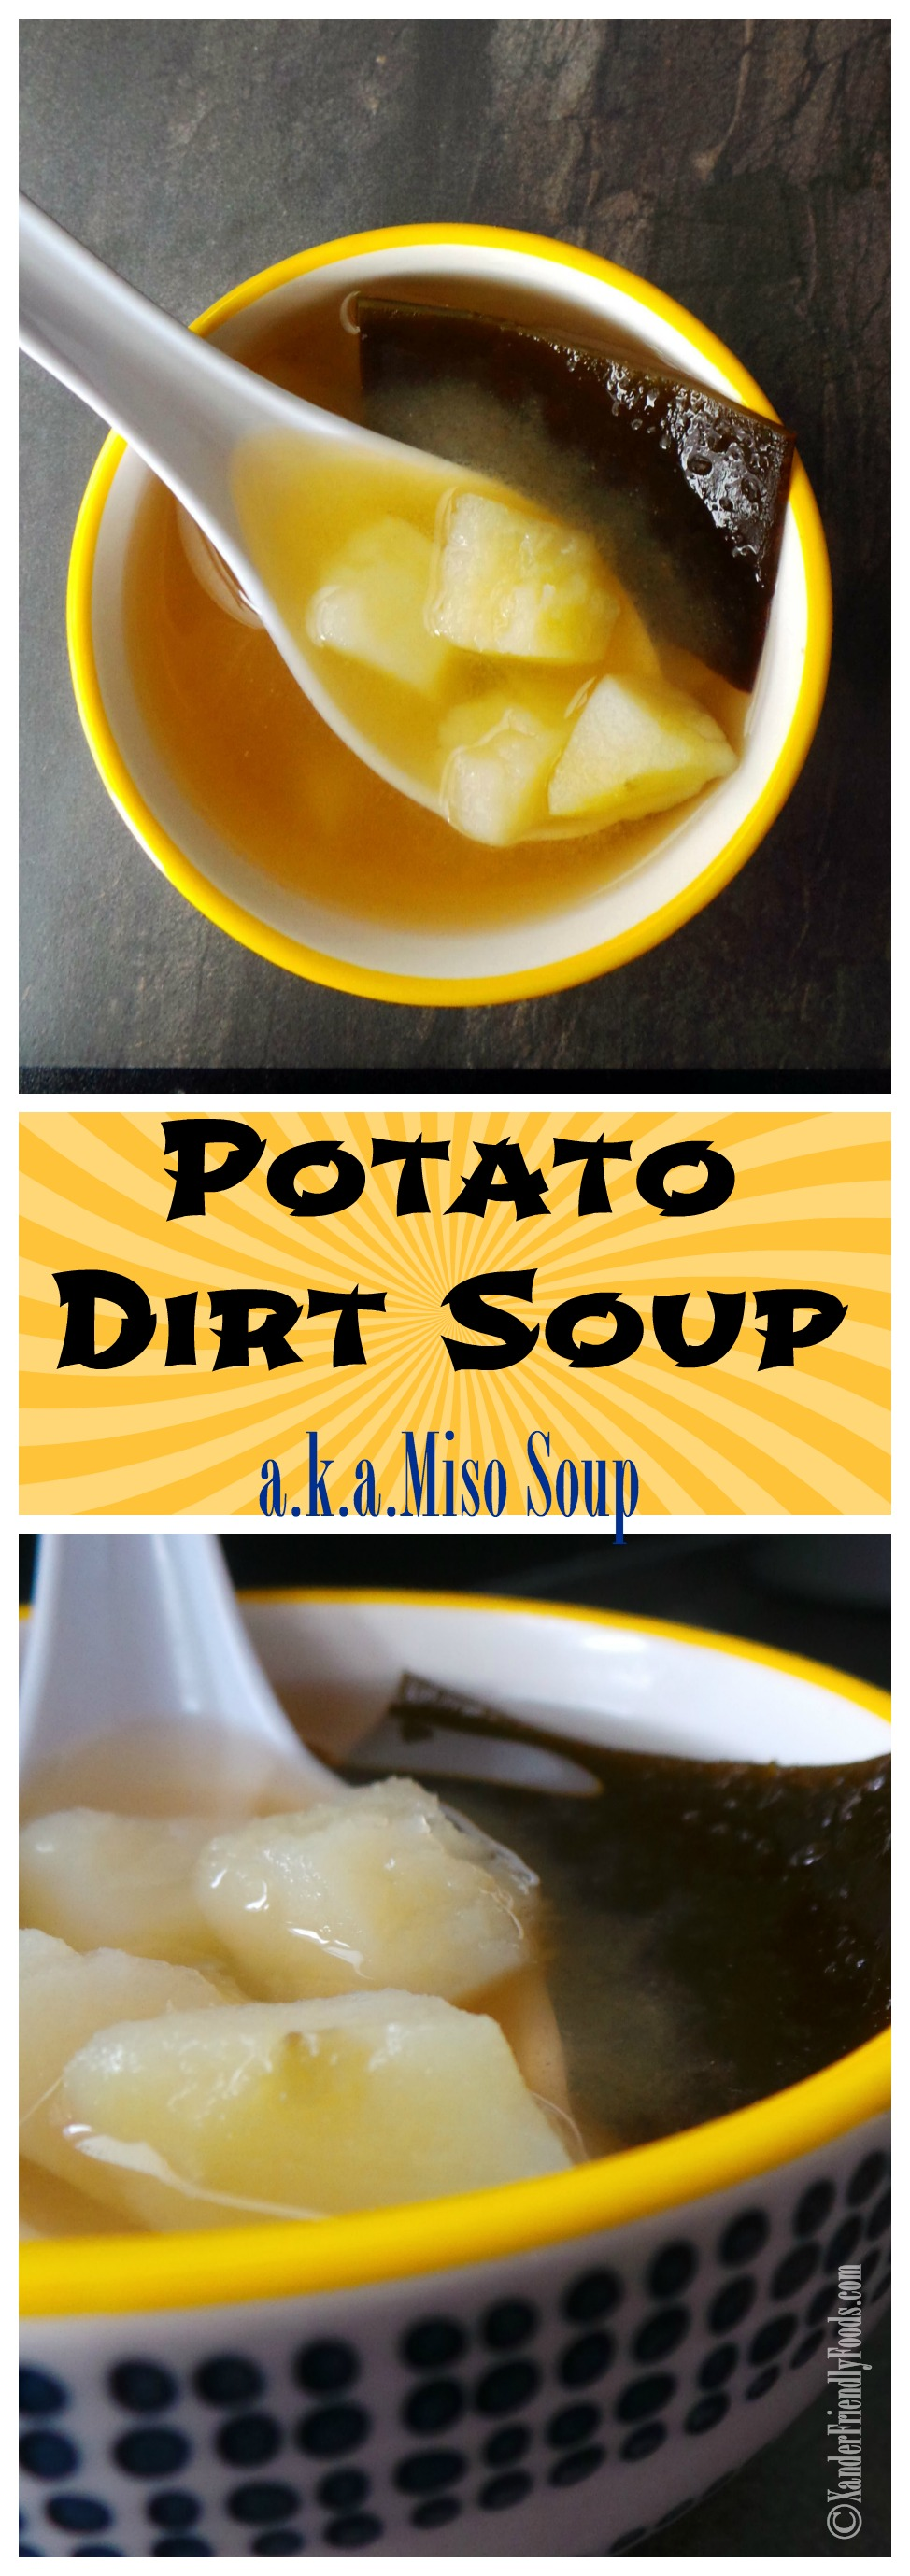 Dirt Soup Collage